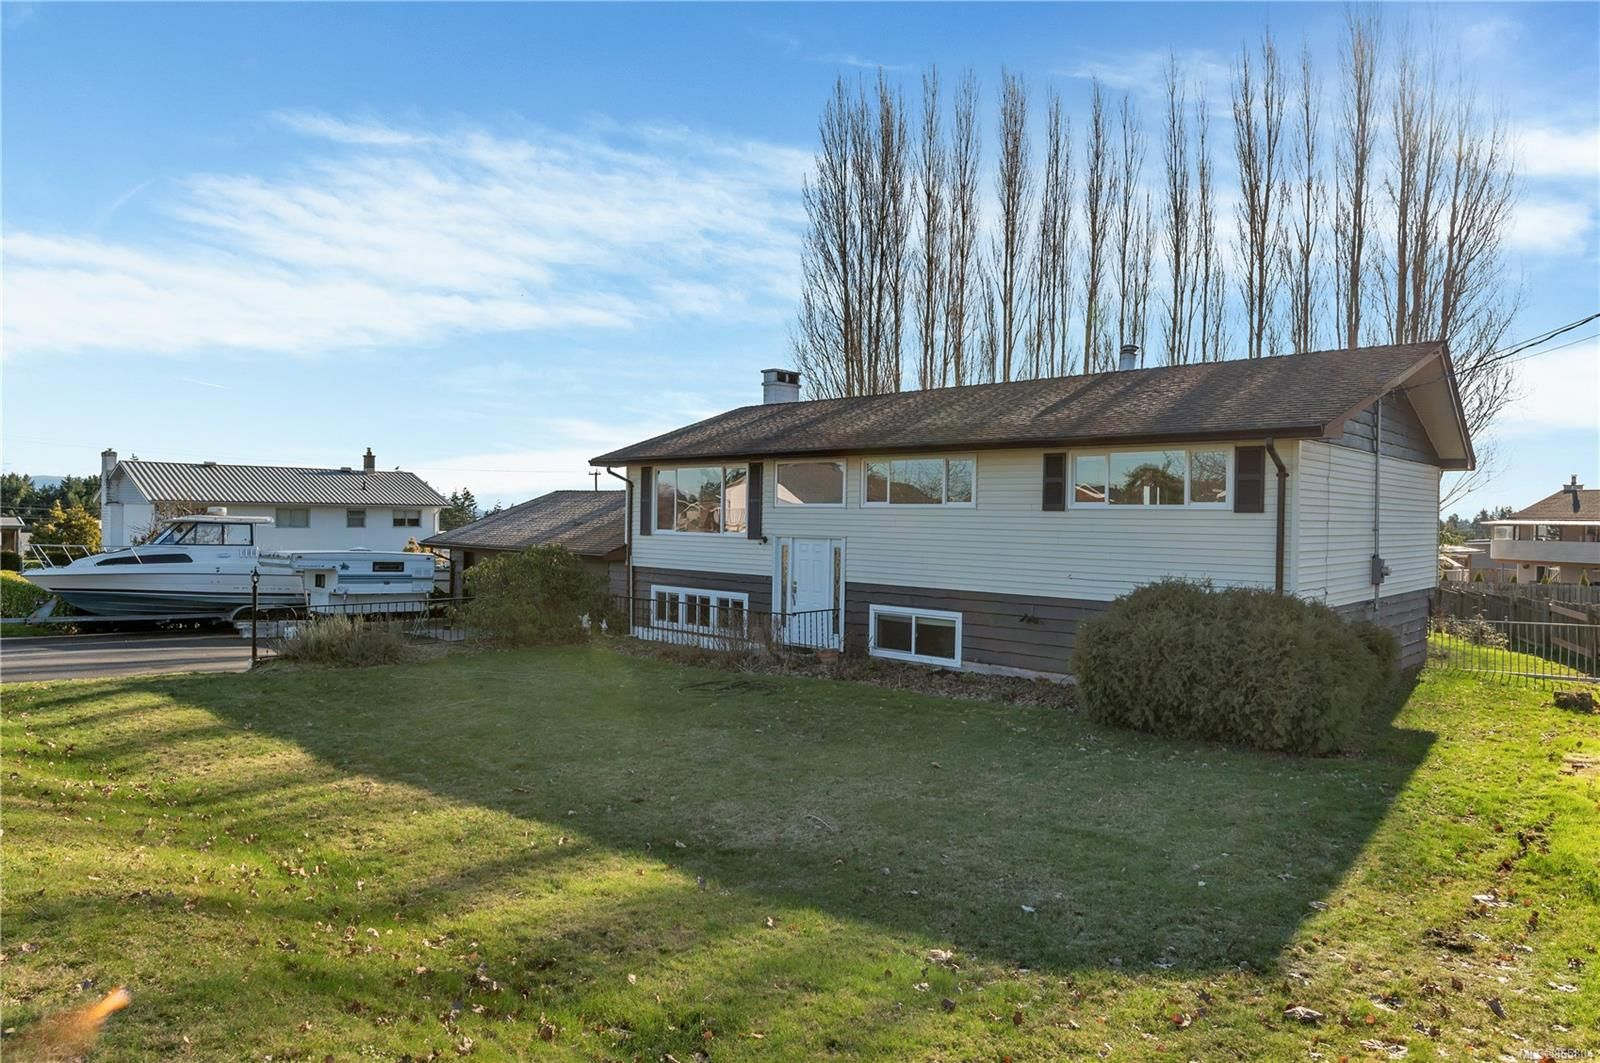 Main Photo: 307 Frances Ave in : CR Campbell River Central House for sale (Campbell River)  : MLS®# 865804